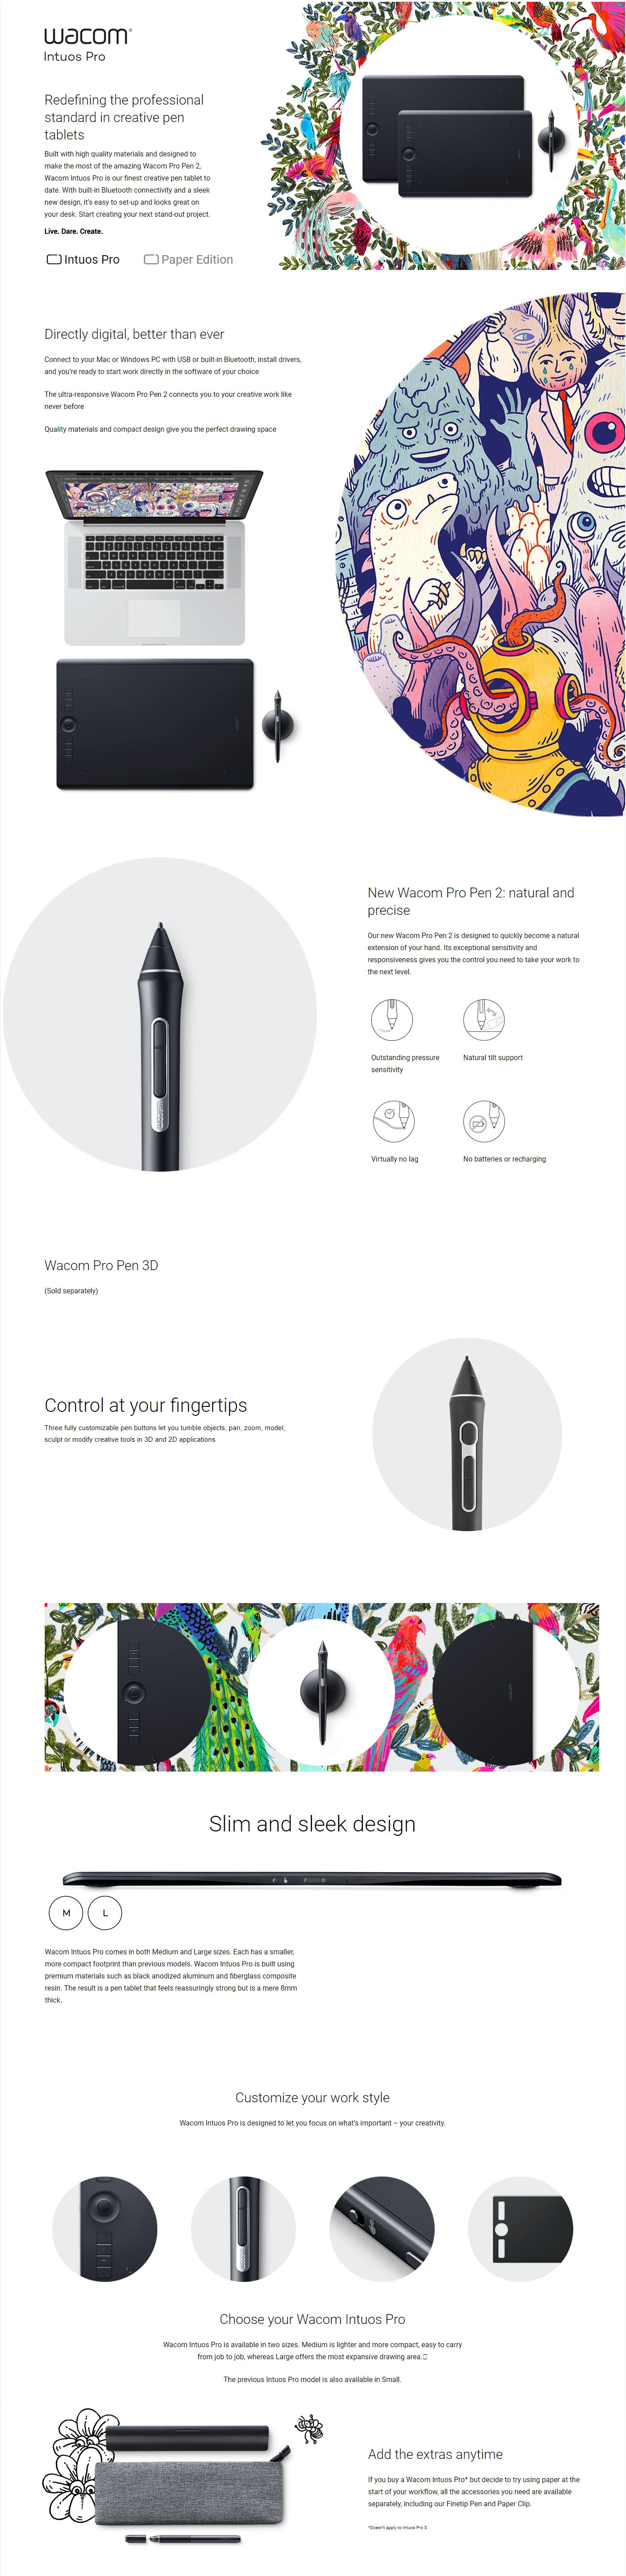 A large marketing image providing additional information about the product Wacom Intuos Pro Medium Drawing Tablet w/ Pro Pen 2 & Paper - Additional alt info not provided